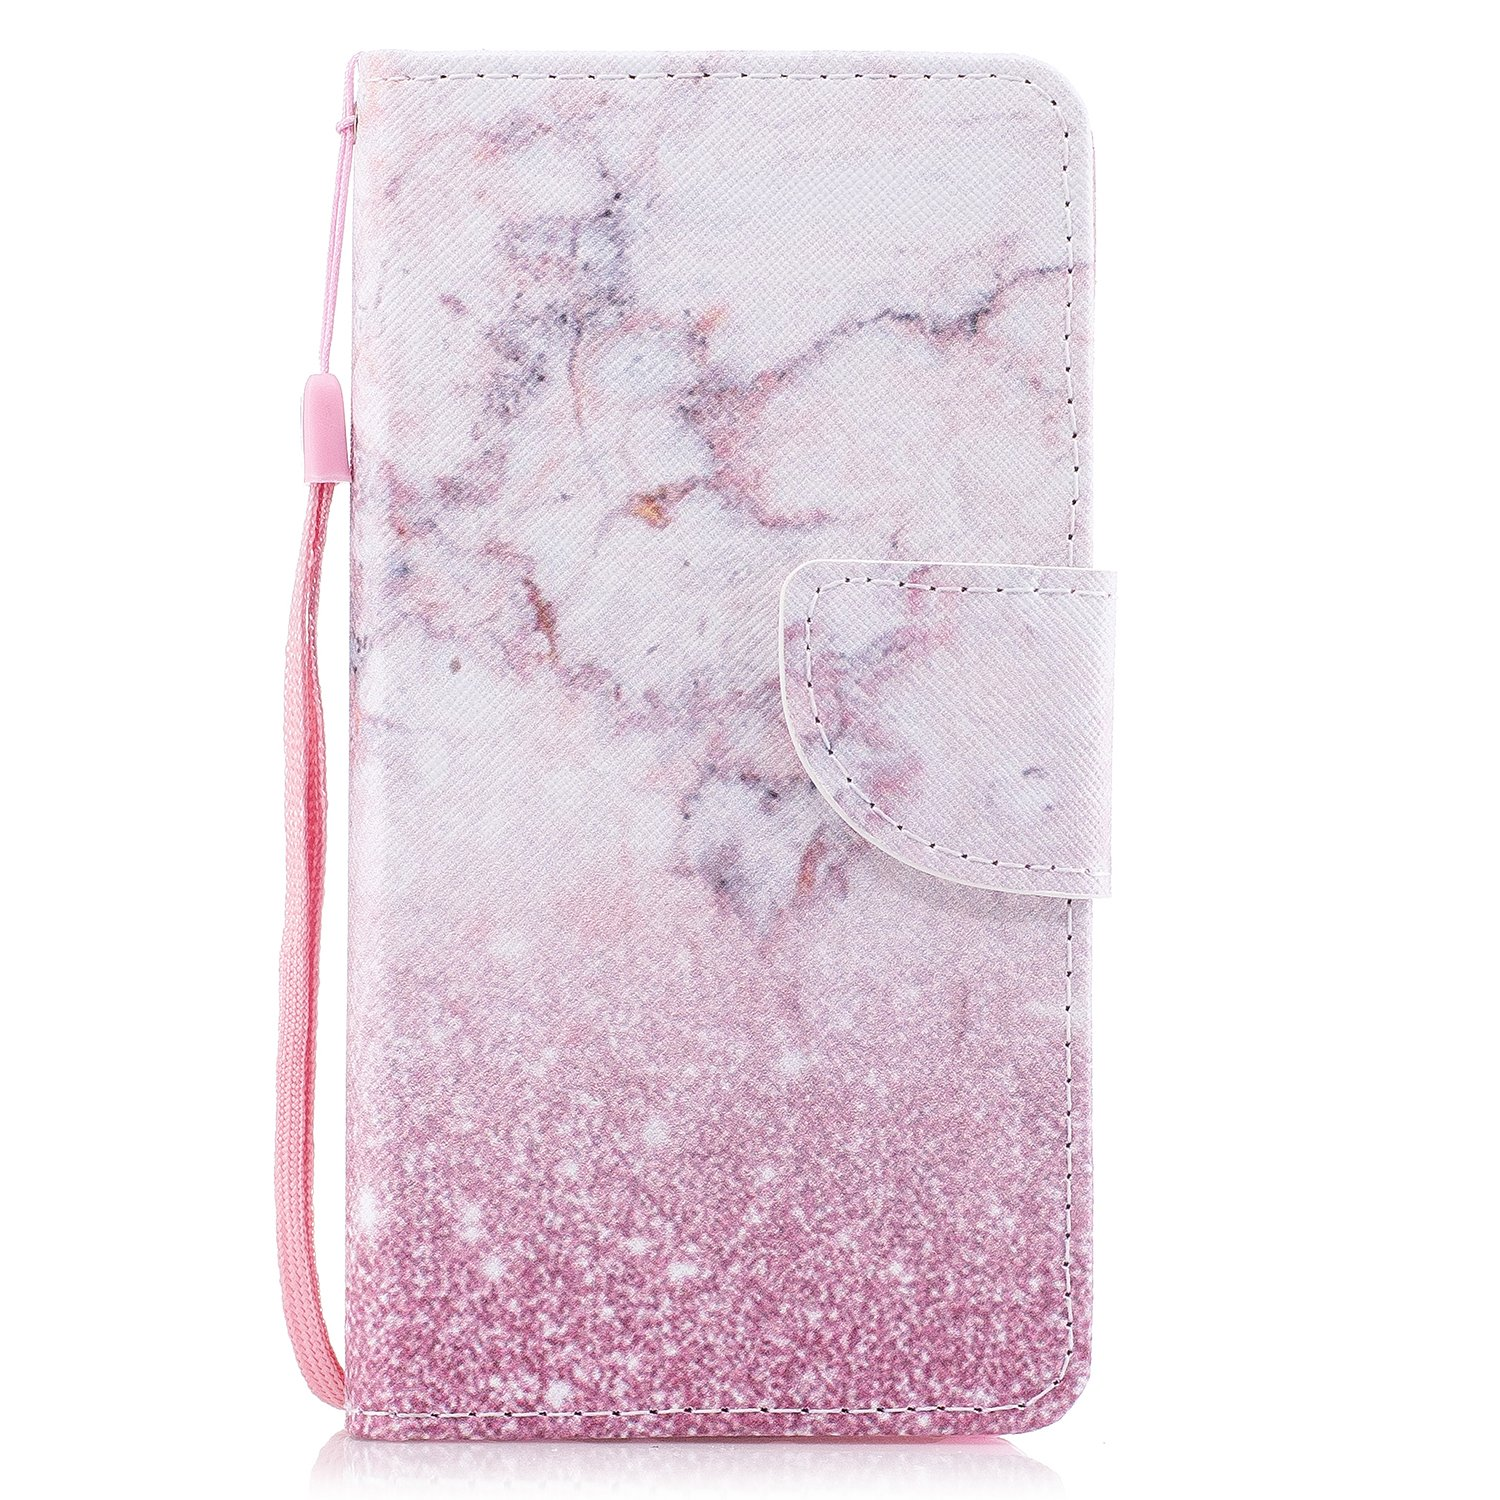 For Samsung Galaxy J3 (2016) Case,Samsung Galaxy J3 (2016) Wallet Case, Ecoway Practical Fultifunction Anti Scratch Flip Fashion Painted pattern design PU Leather Stand Function Card Holder and ID Slot Case Cover Protective Skin Cover for Samsung Galaxy J